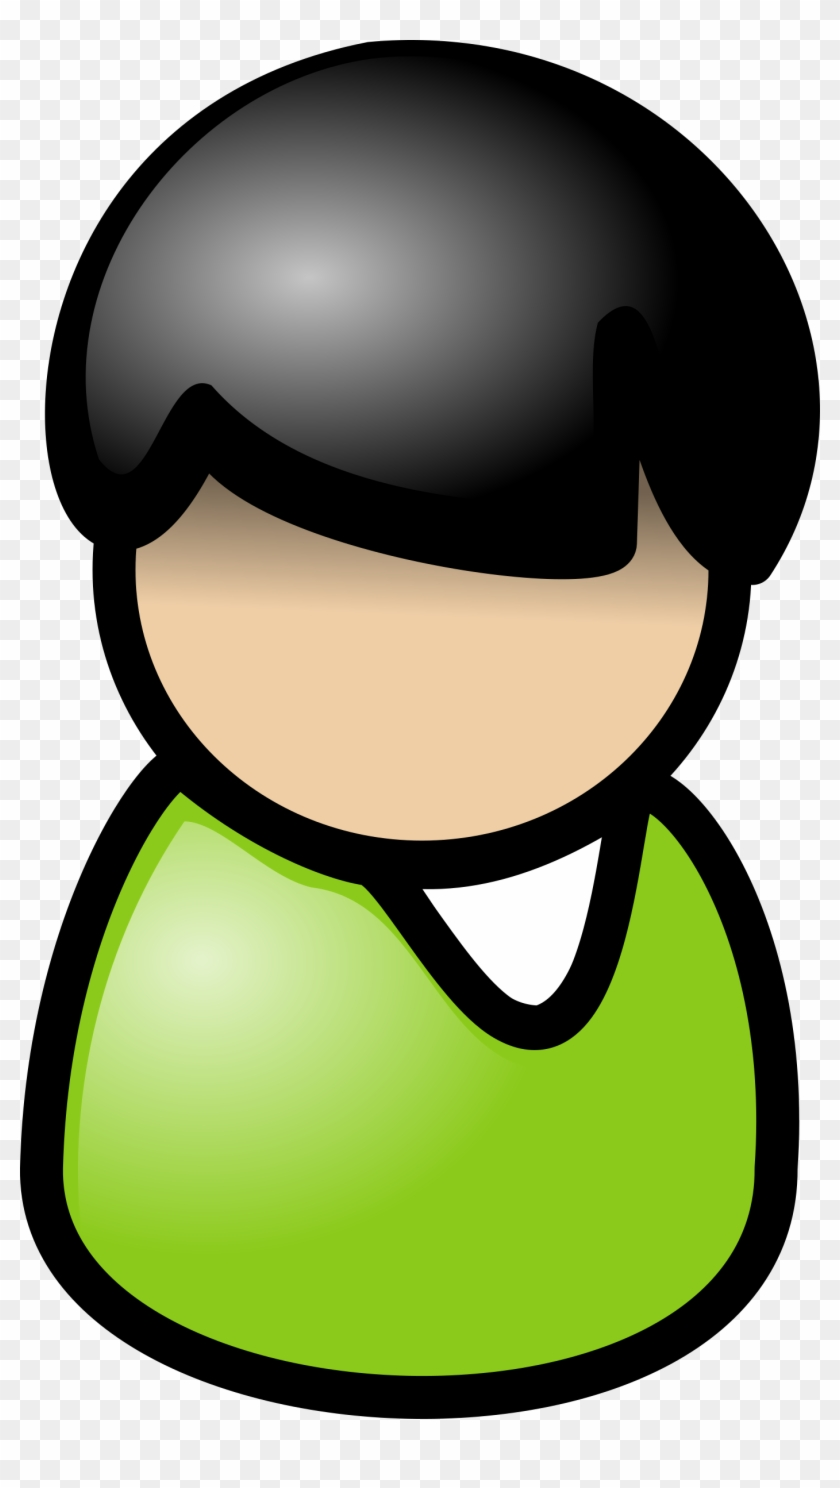 Big Image - Clipart People #138553